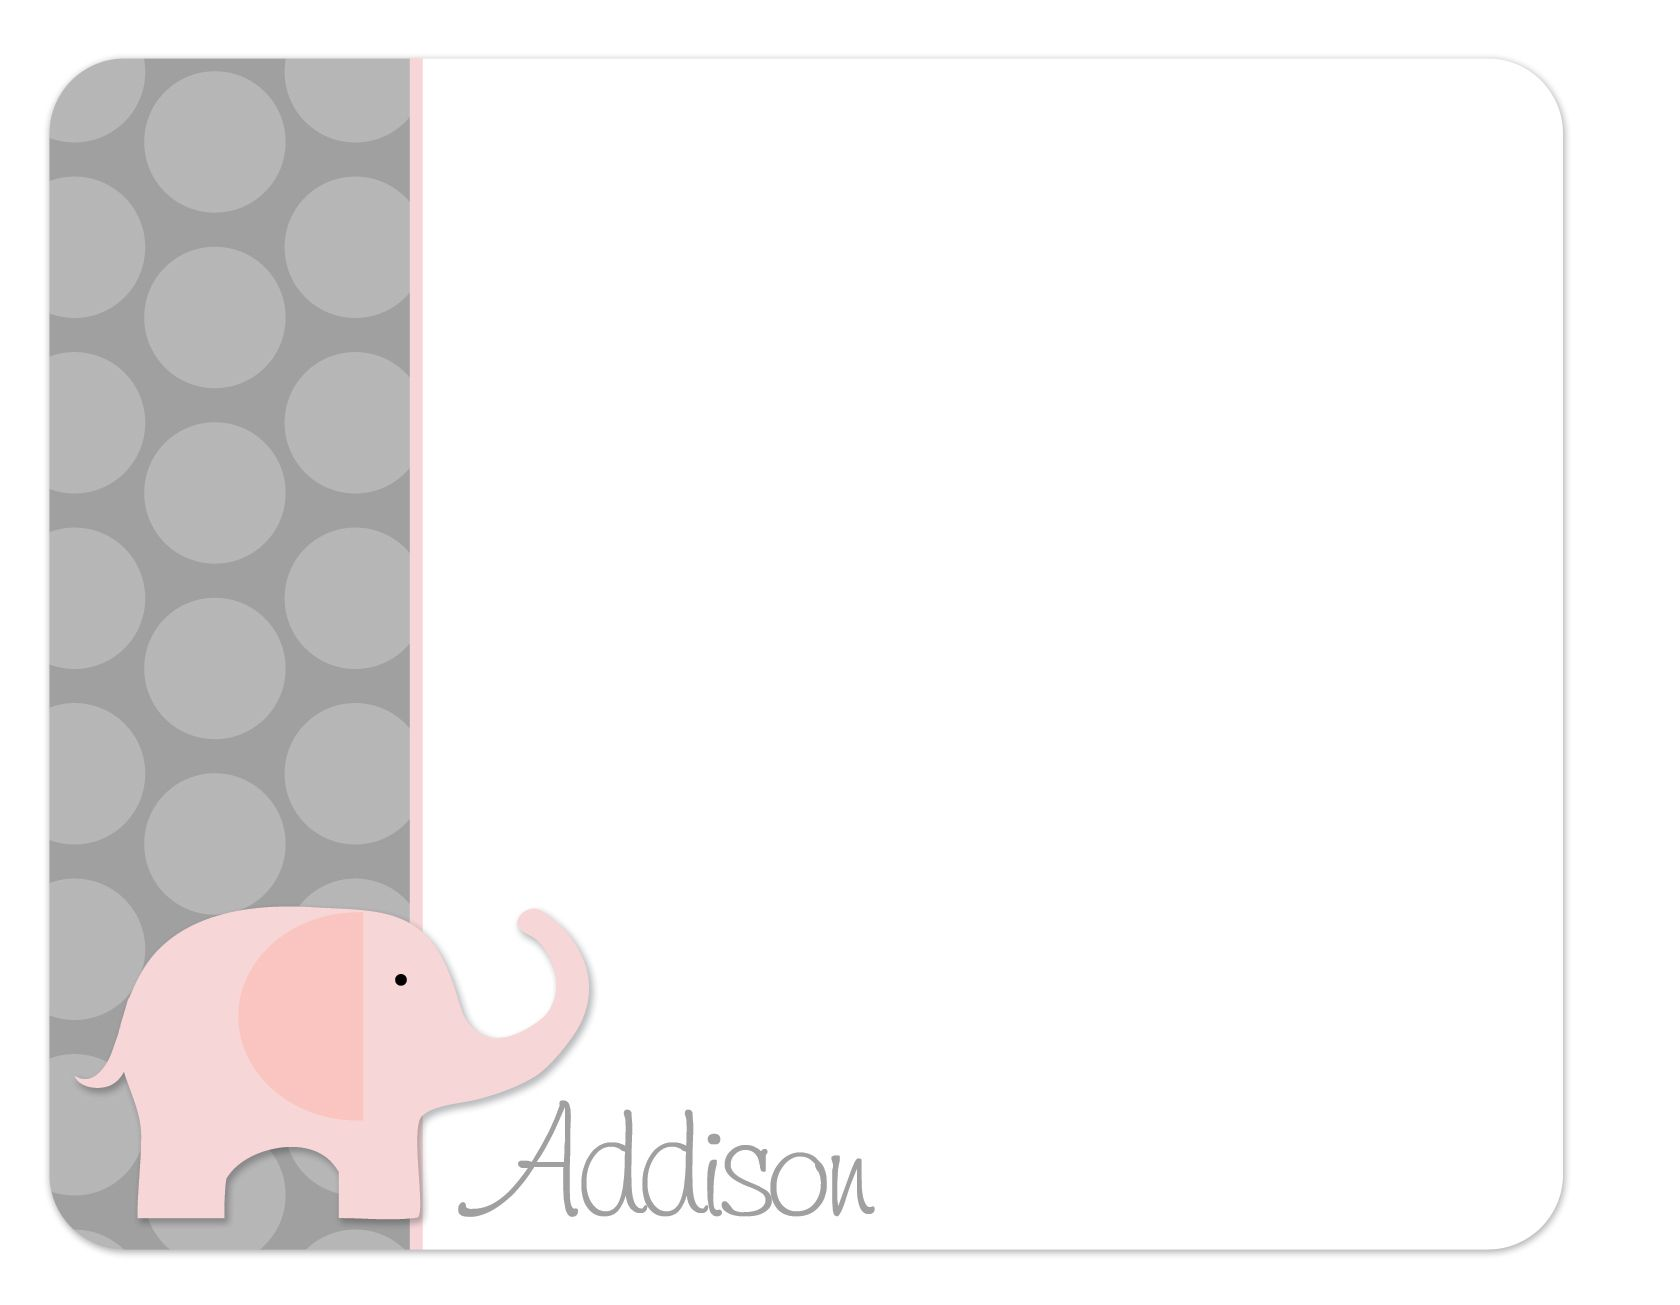 Get 2 Years Old Baby Shower Invitation Ideas | FREE Baby Shower ...